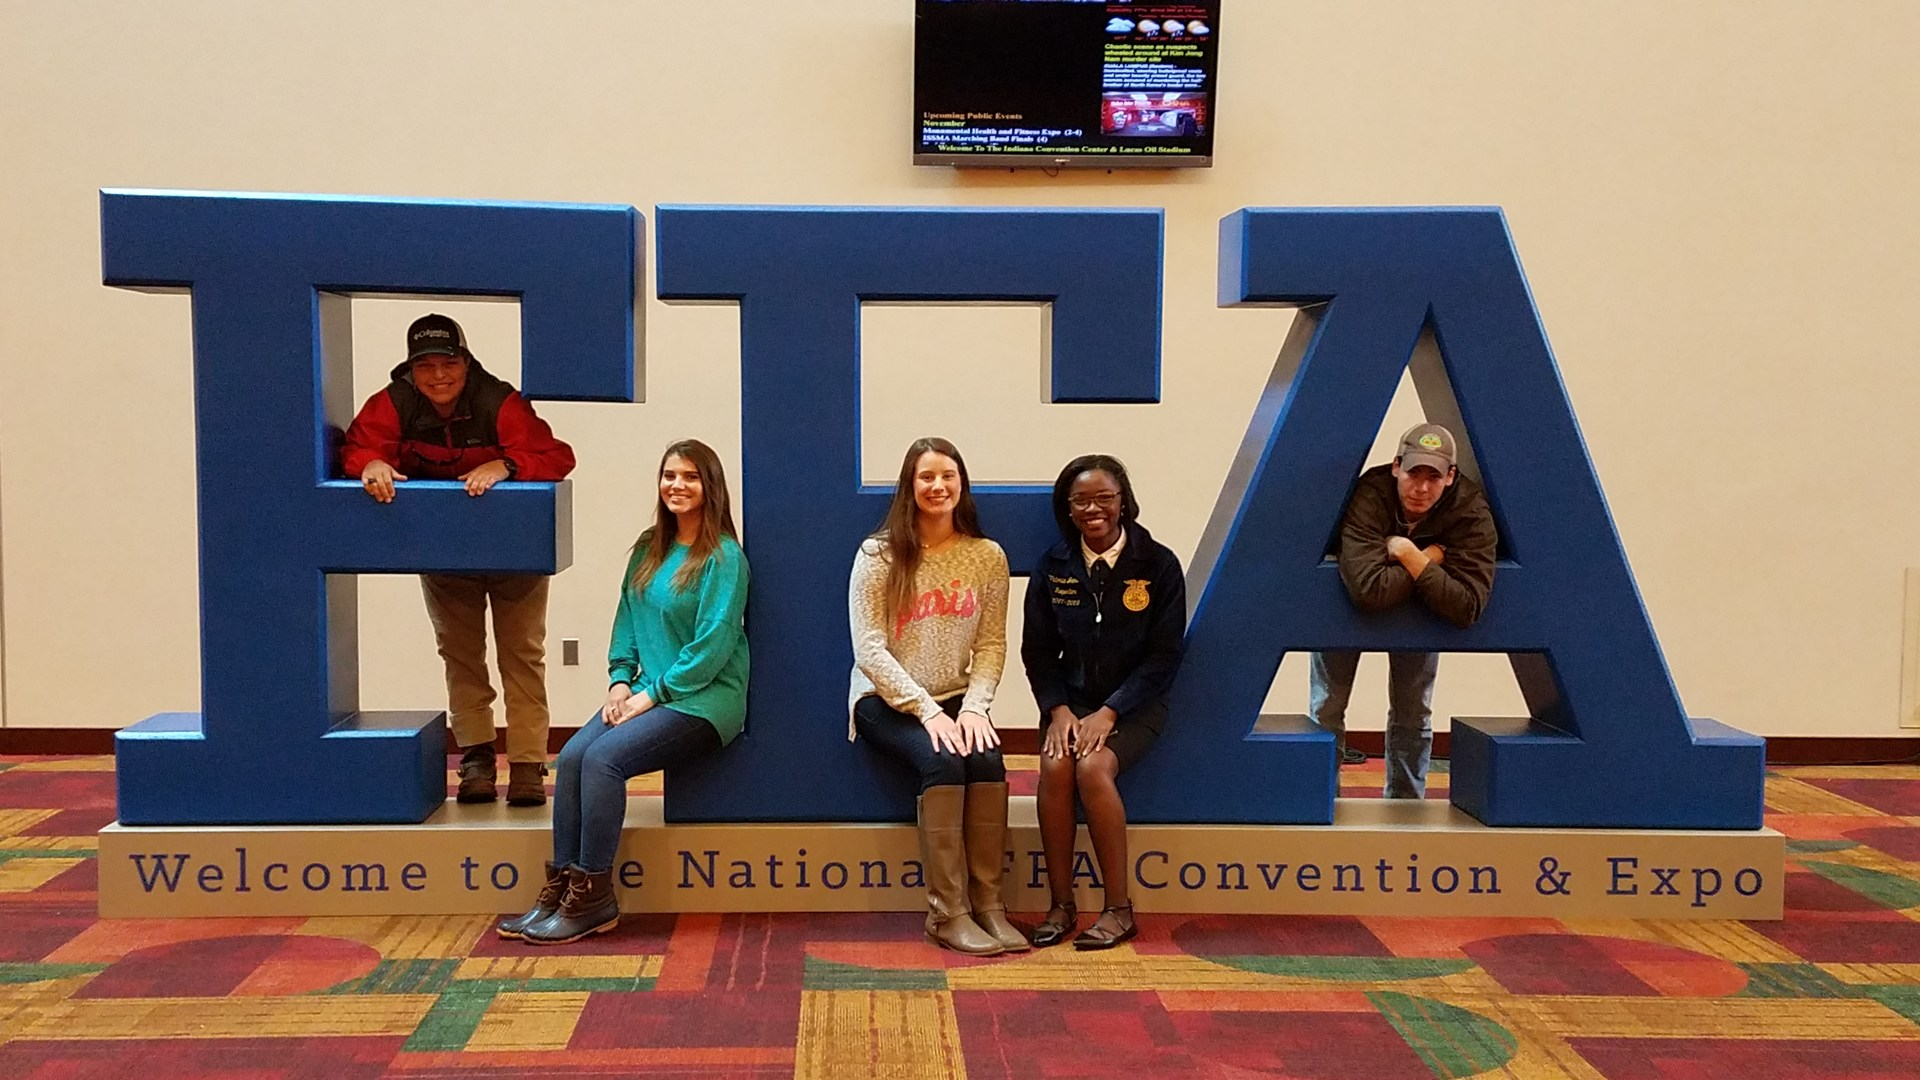 FFA officers at the National FFA convention.